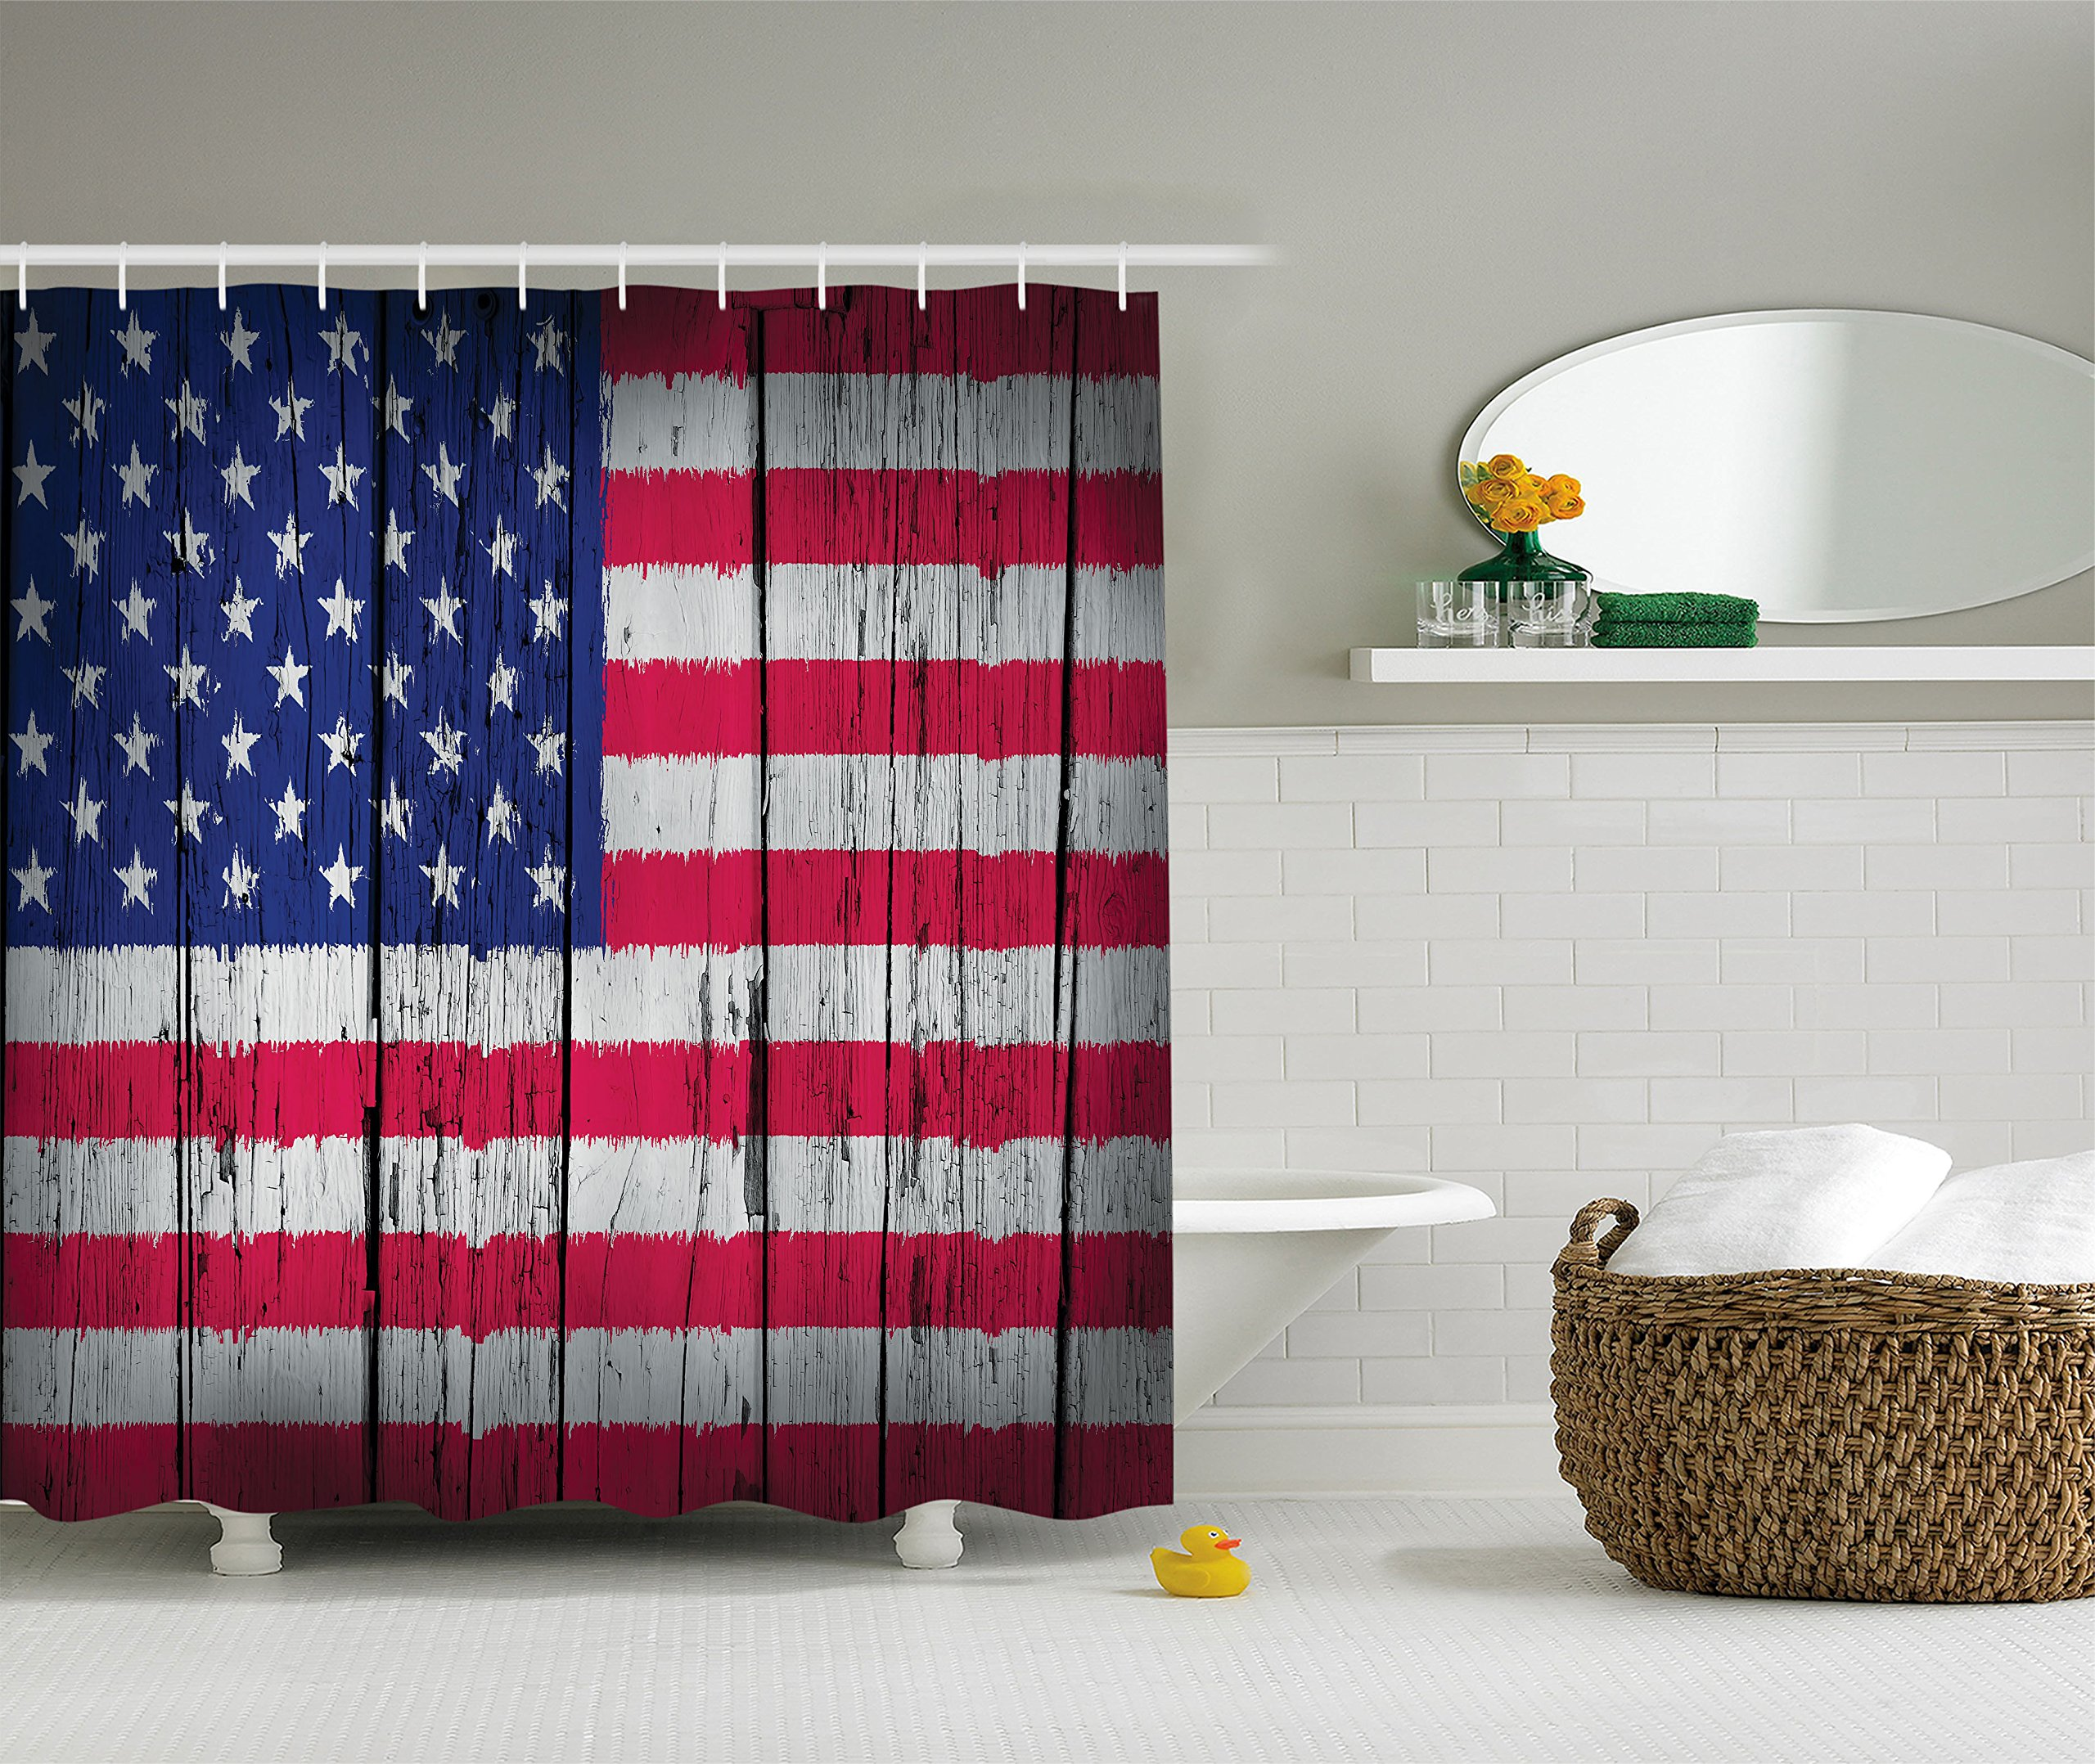 Rustic Decor American Usa Flag Shower Curtain Set By Ambesonne, Fourth Of July Independence Day Grunge Art Aged Hardwood Wooden Wall Looking Art, Bathroom Accessories, 75 Inches Long